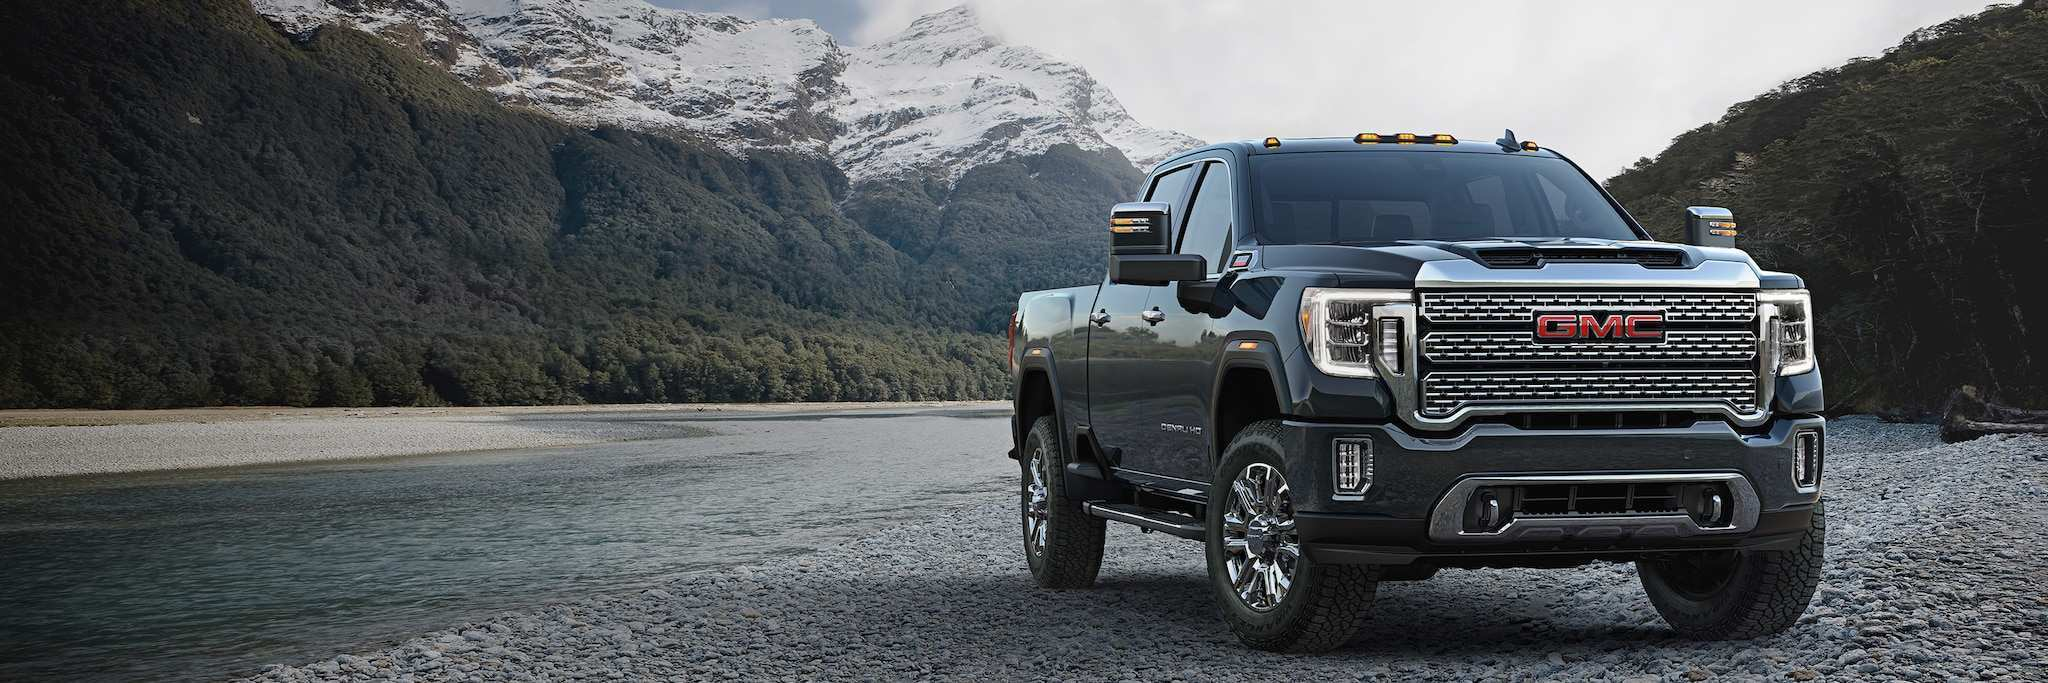 41 All New 2020 Gmc Sierra 2500 Picture